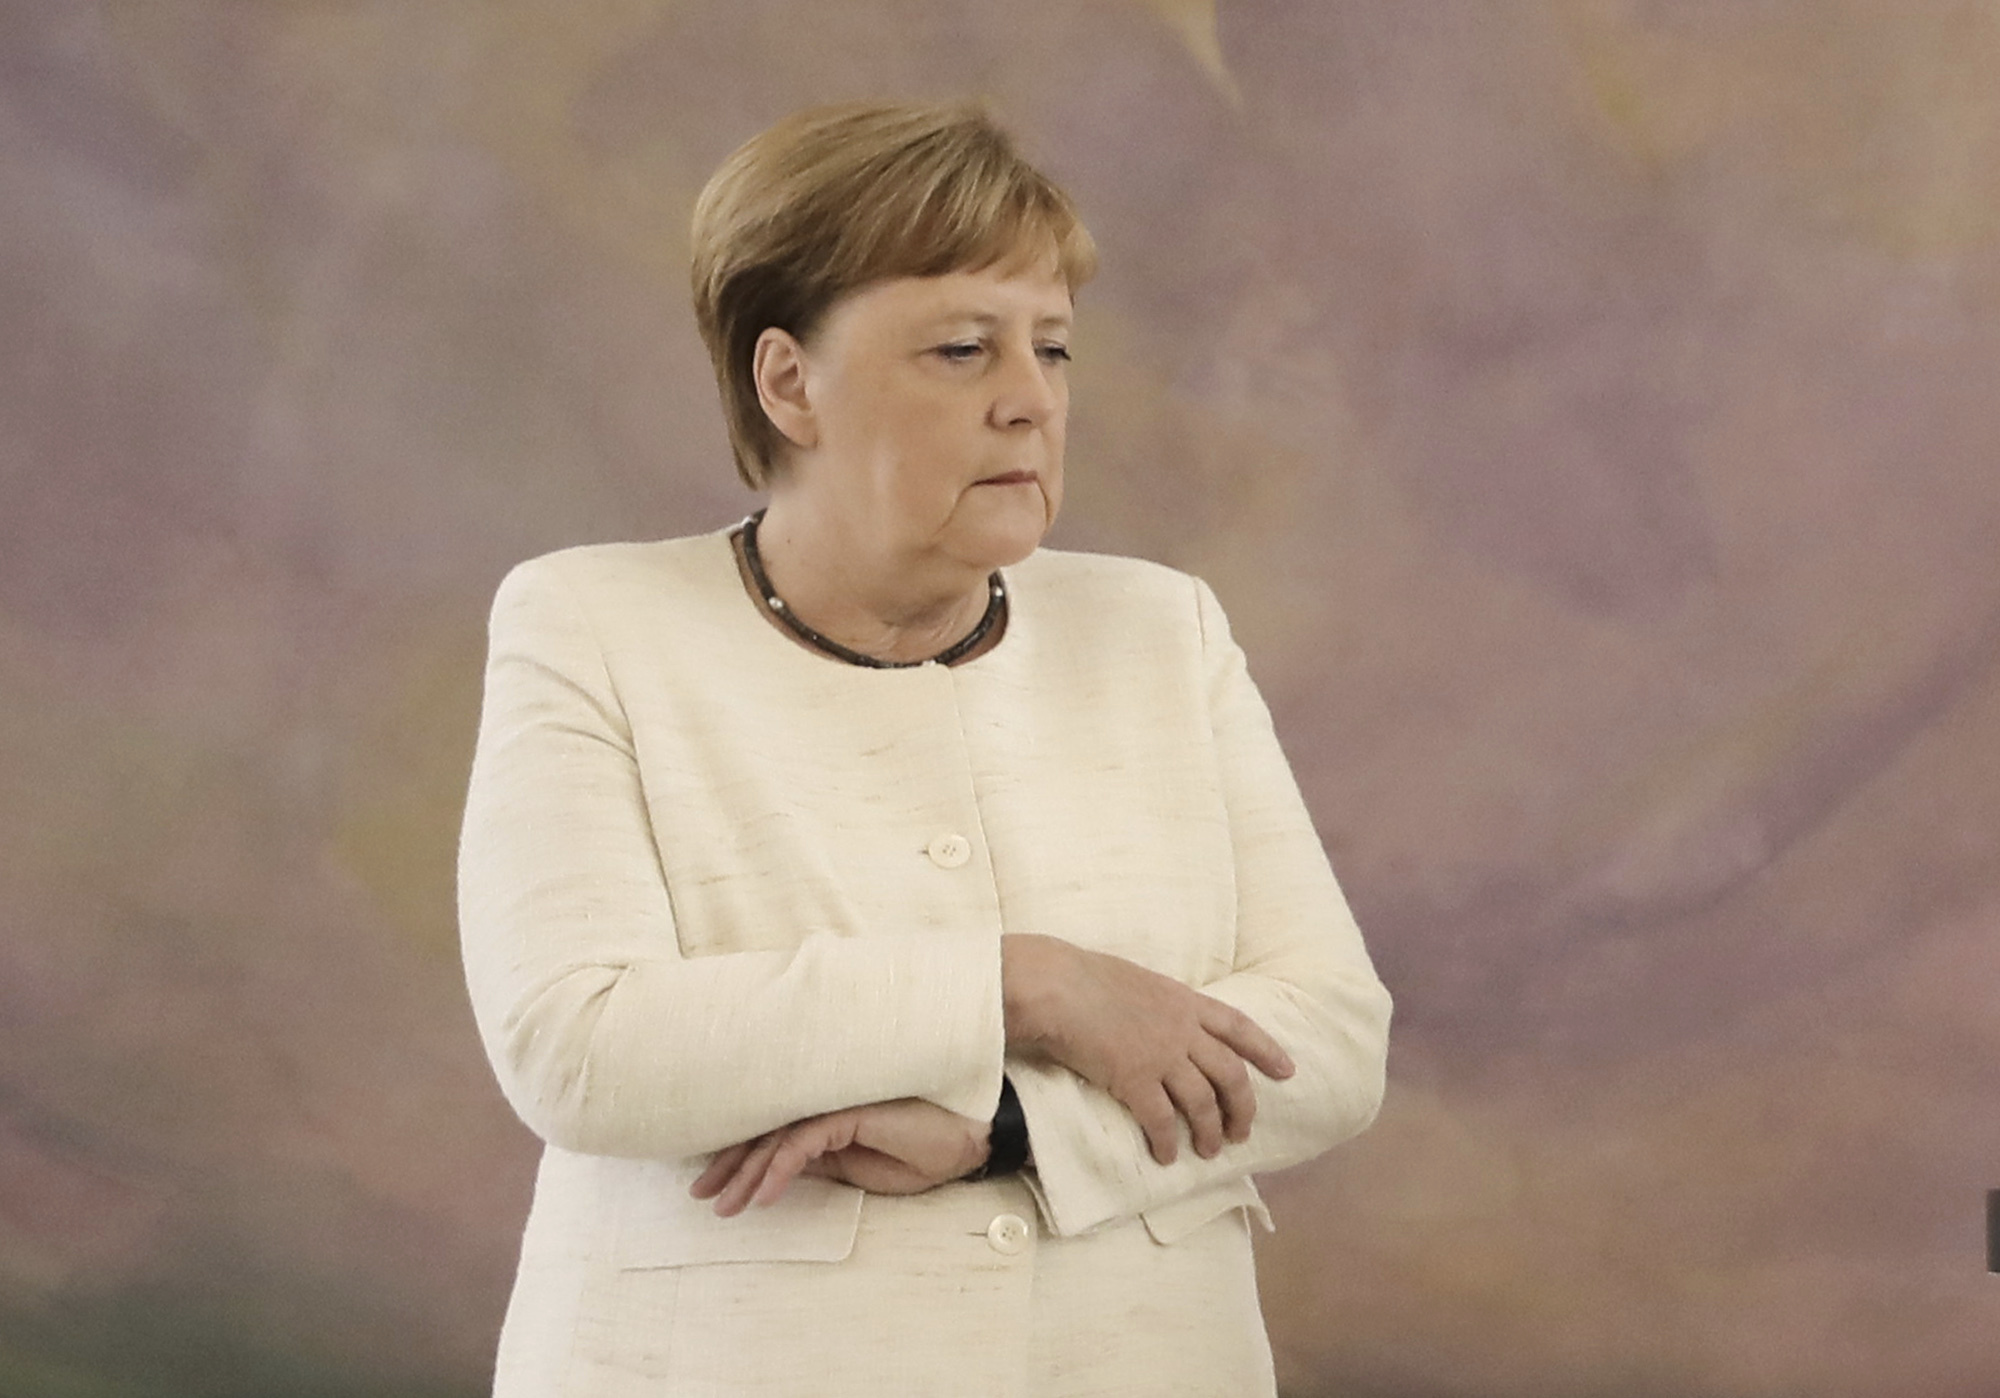 Merkel, 64, folded her arms across her chest while her body trembled for around two minutes as she stood alongside President Frank-Walter Steinmeier at an indoor event.